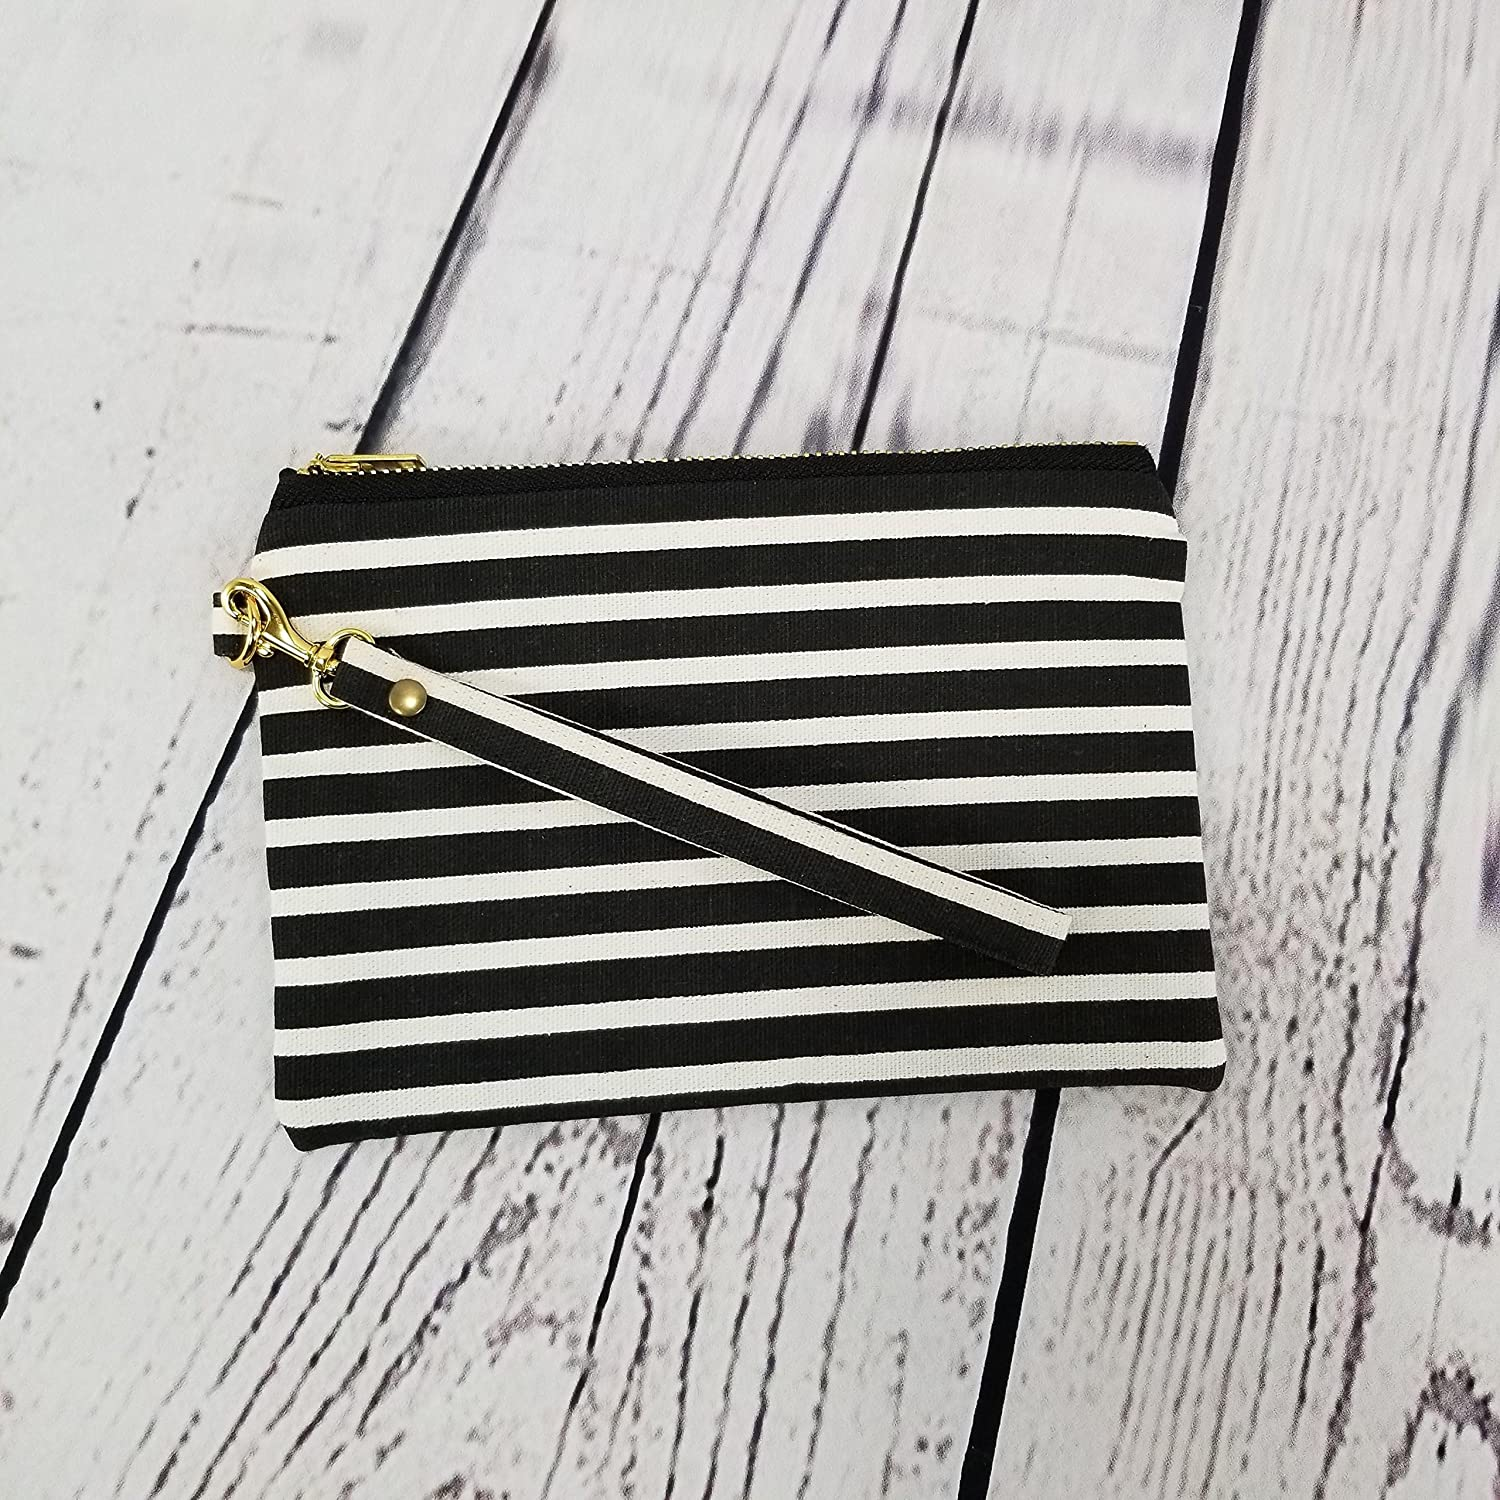 Black Striped Cotton Canvas Wristlet Wristlets for Women Large Wristlets Wristlet Clutch Gifts for Women